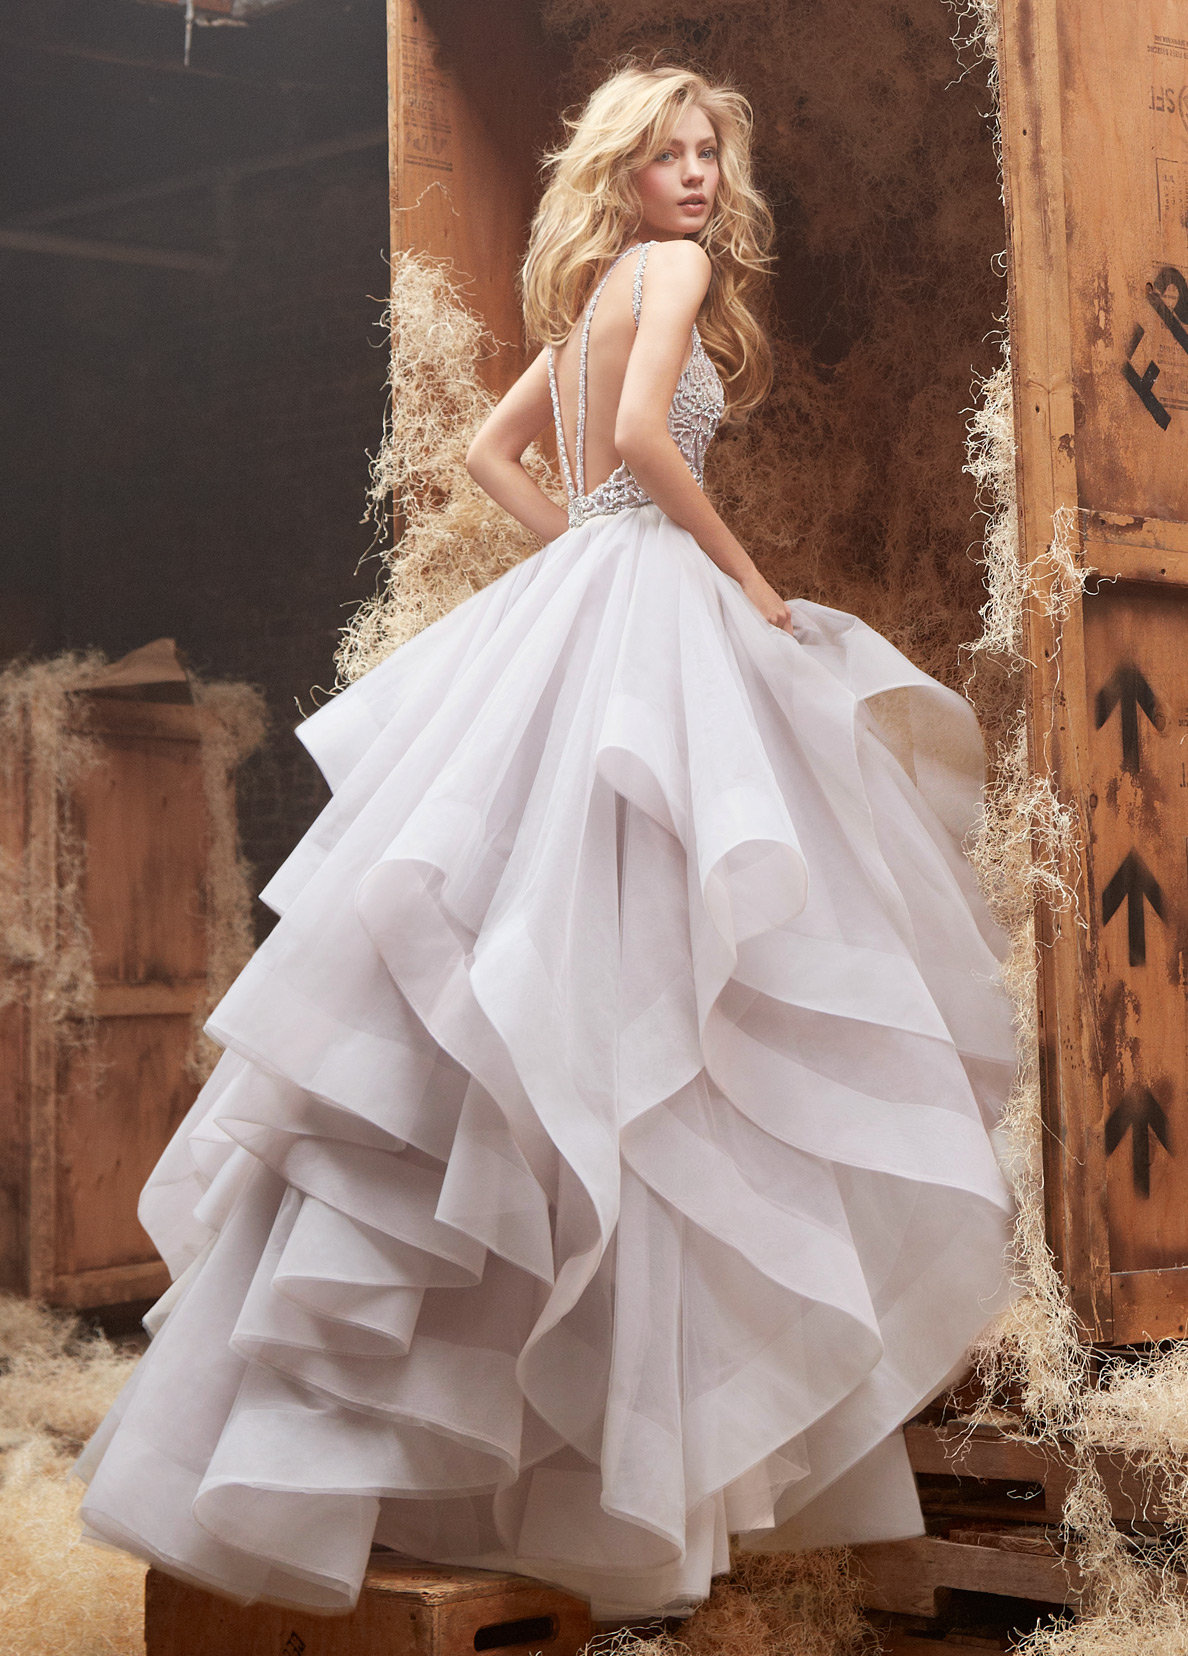 hayley-paige-bridal-tulle-halter-high-neck-alabaster-crystal-horse-hair-flounced-chapel-train-6413_lg.jpg